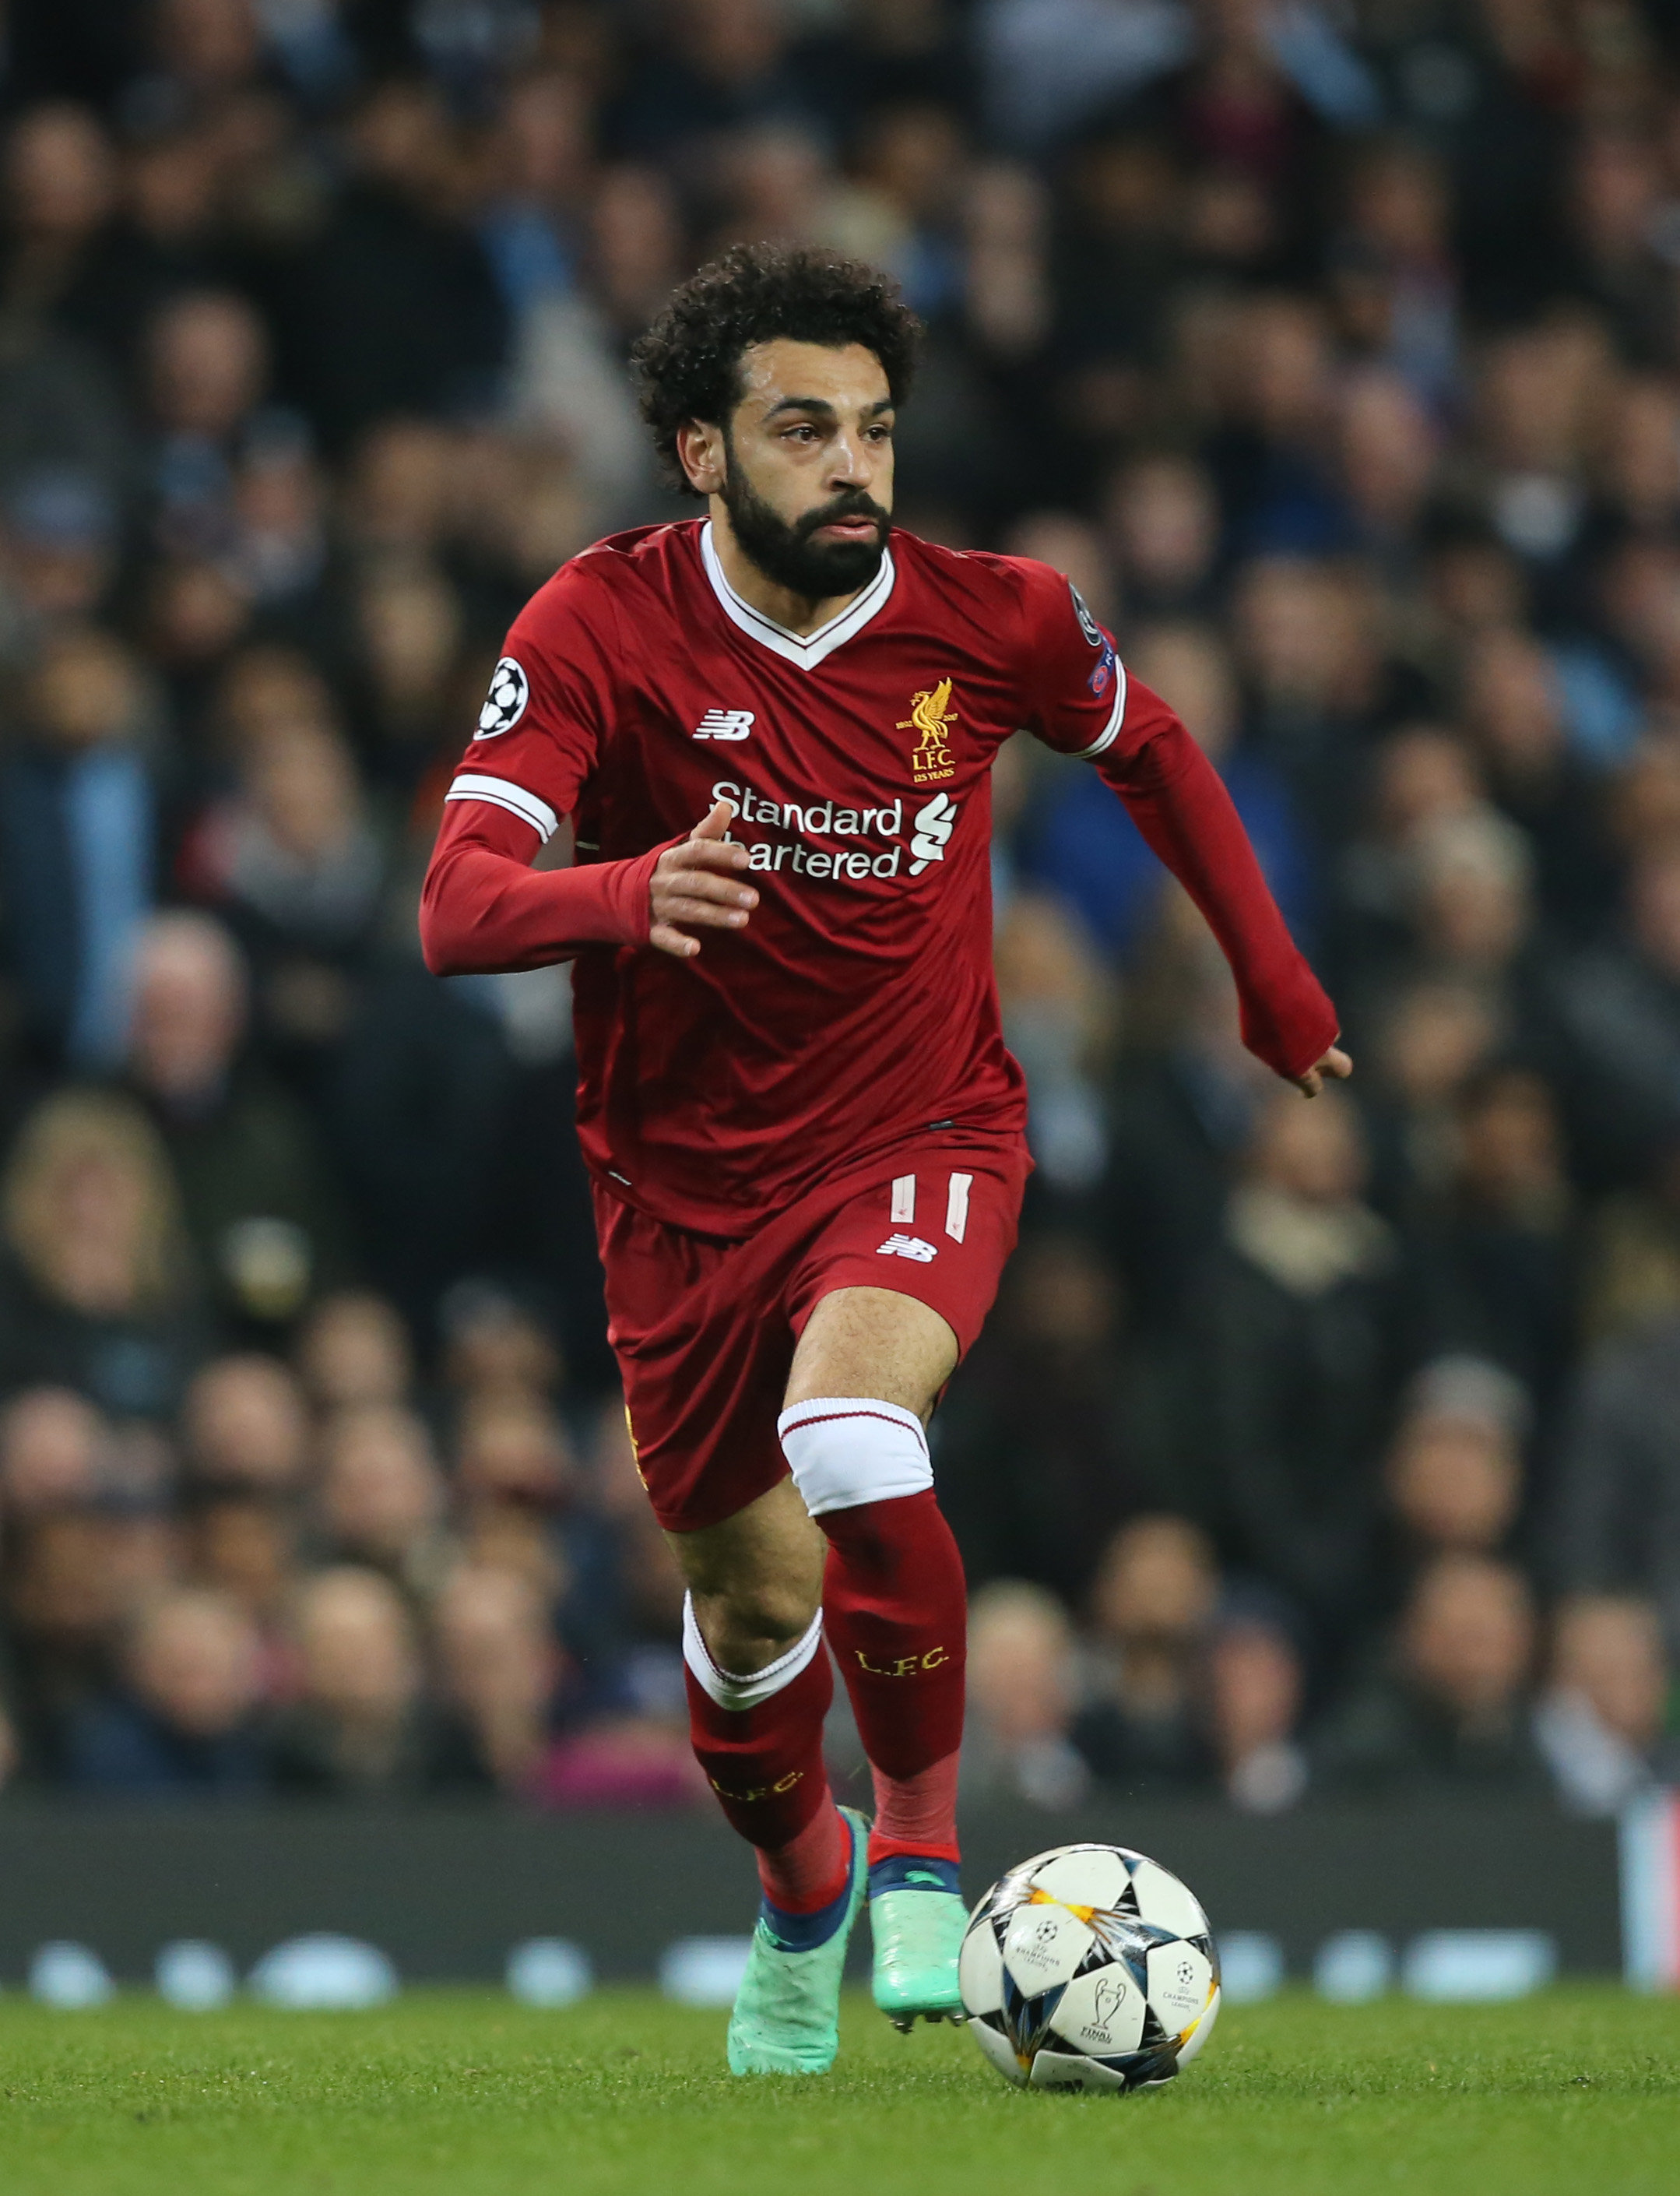 Mohamed Salah for Liverpool